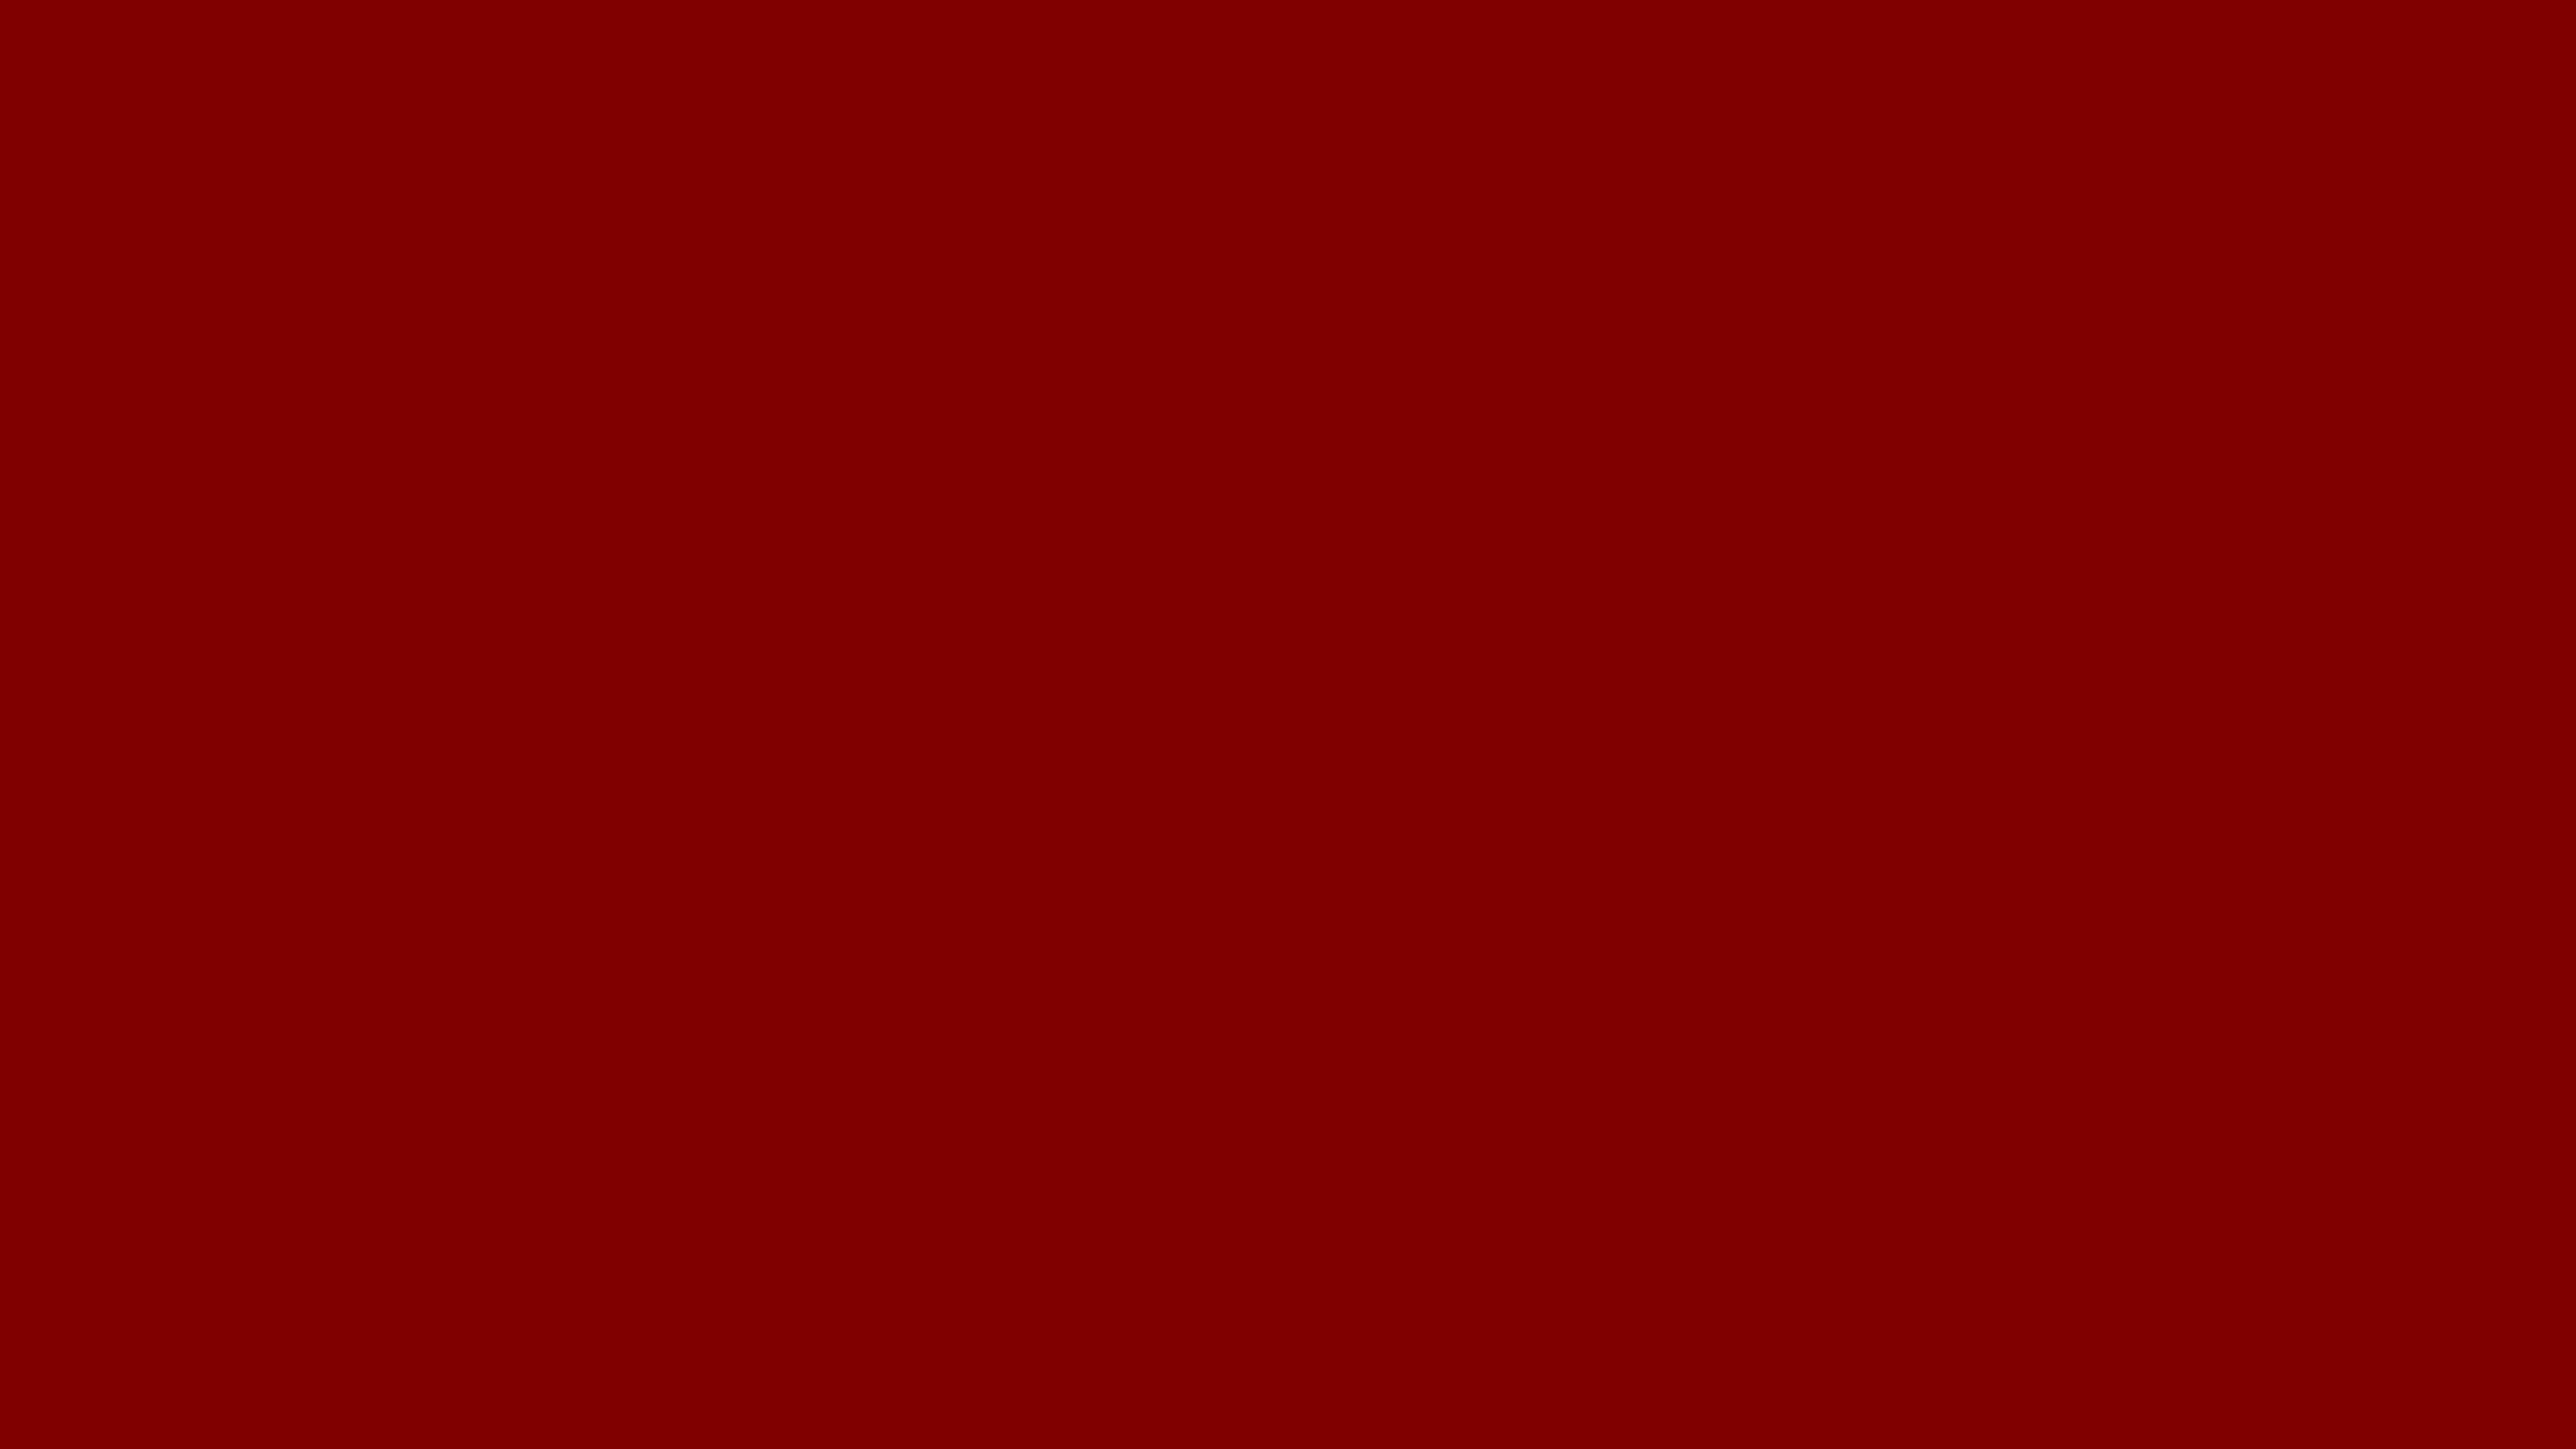 7680x4320 Maroon Web Solid Color Background